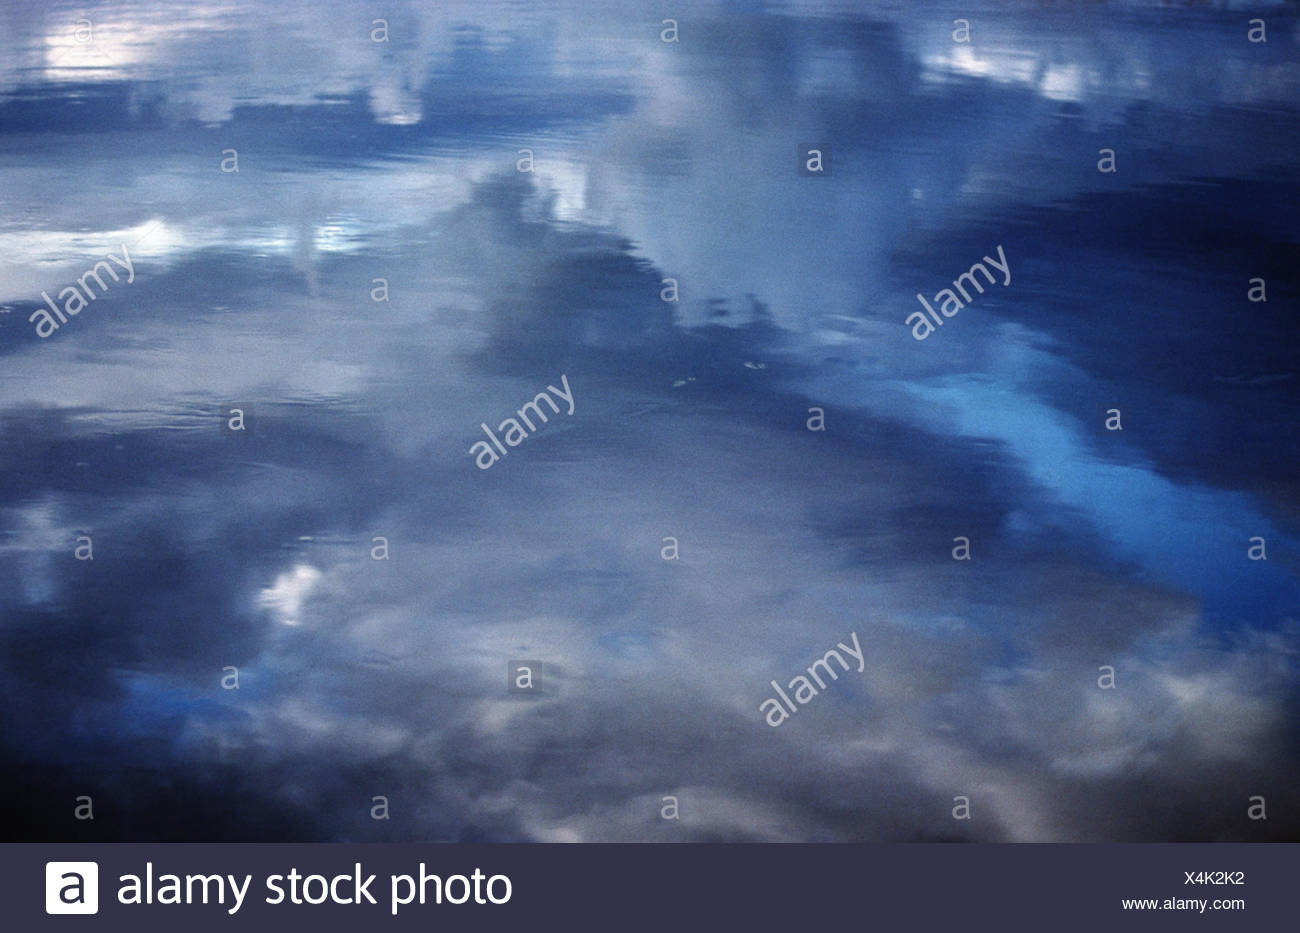 cloud reflexion on water surface, Iceland - Stock Image